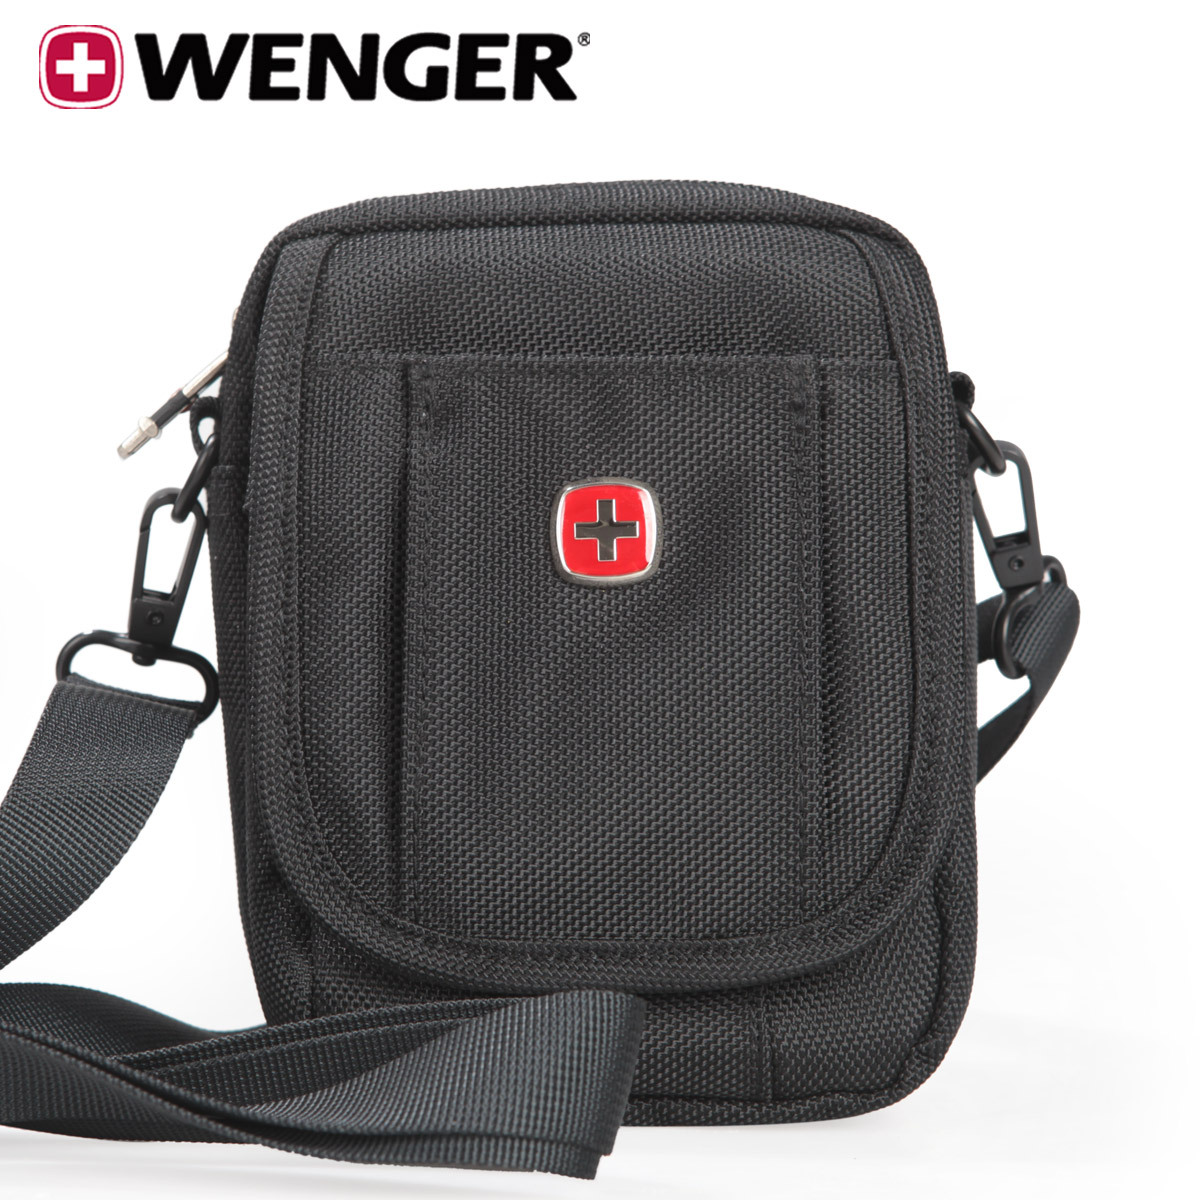 Swiss Army Knife Wenger Male Shoulder Bag Messenger Bag